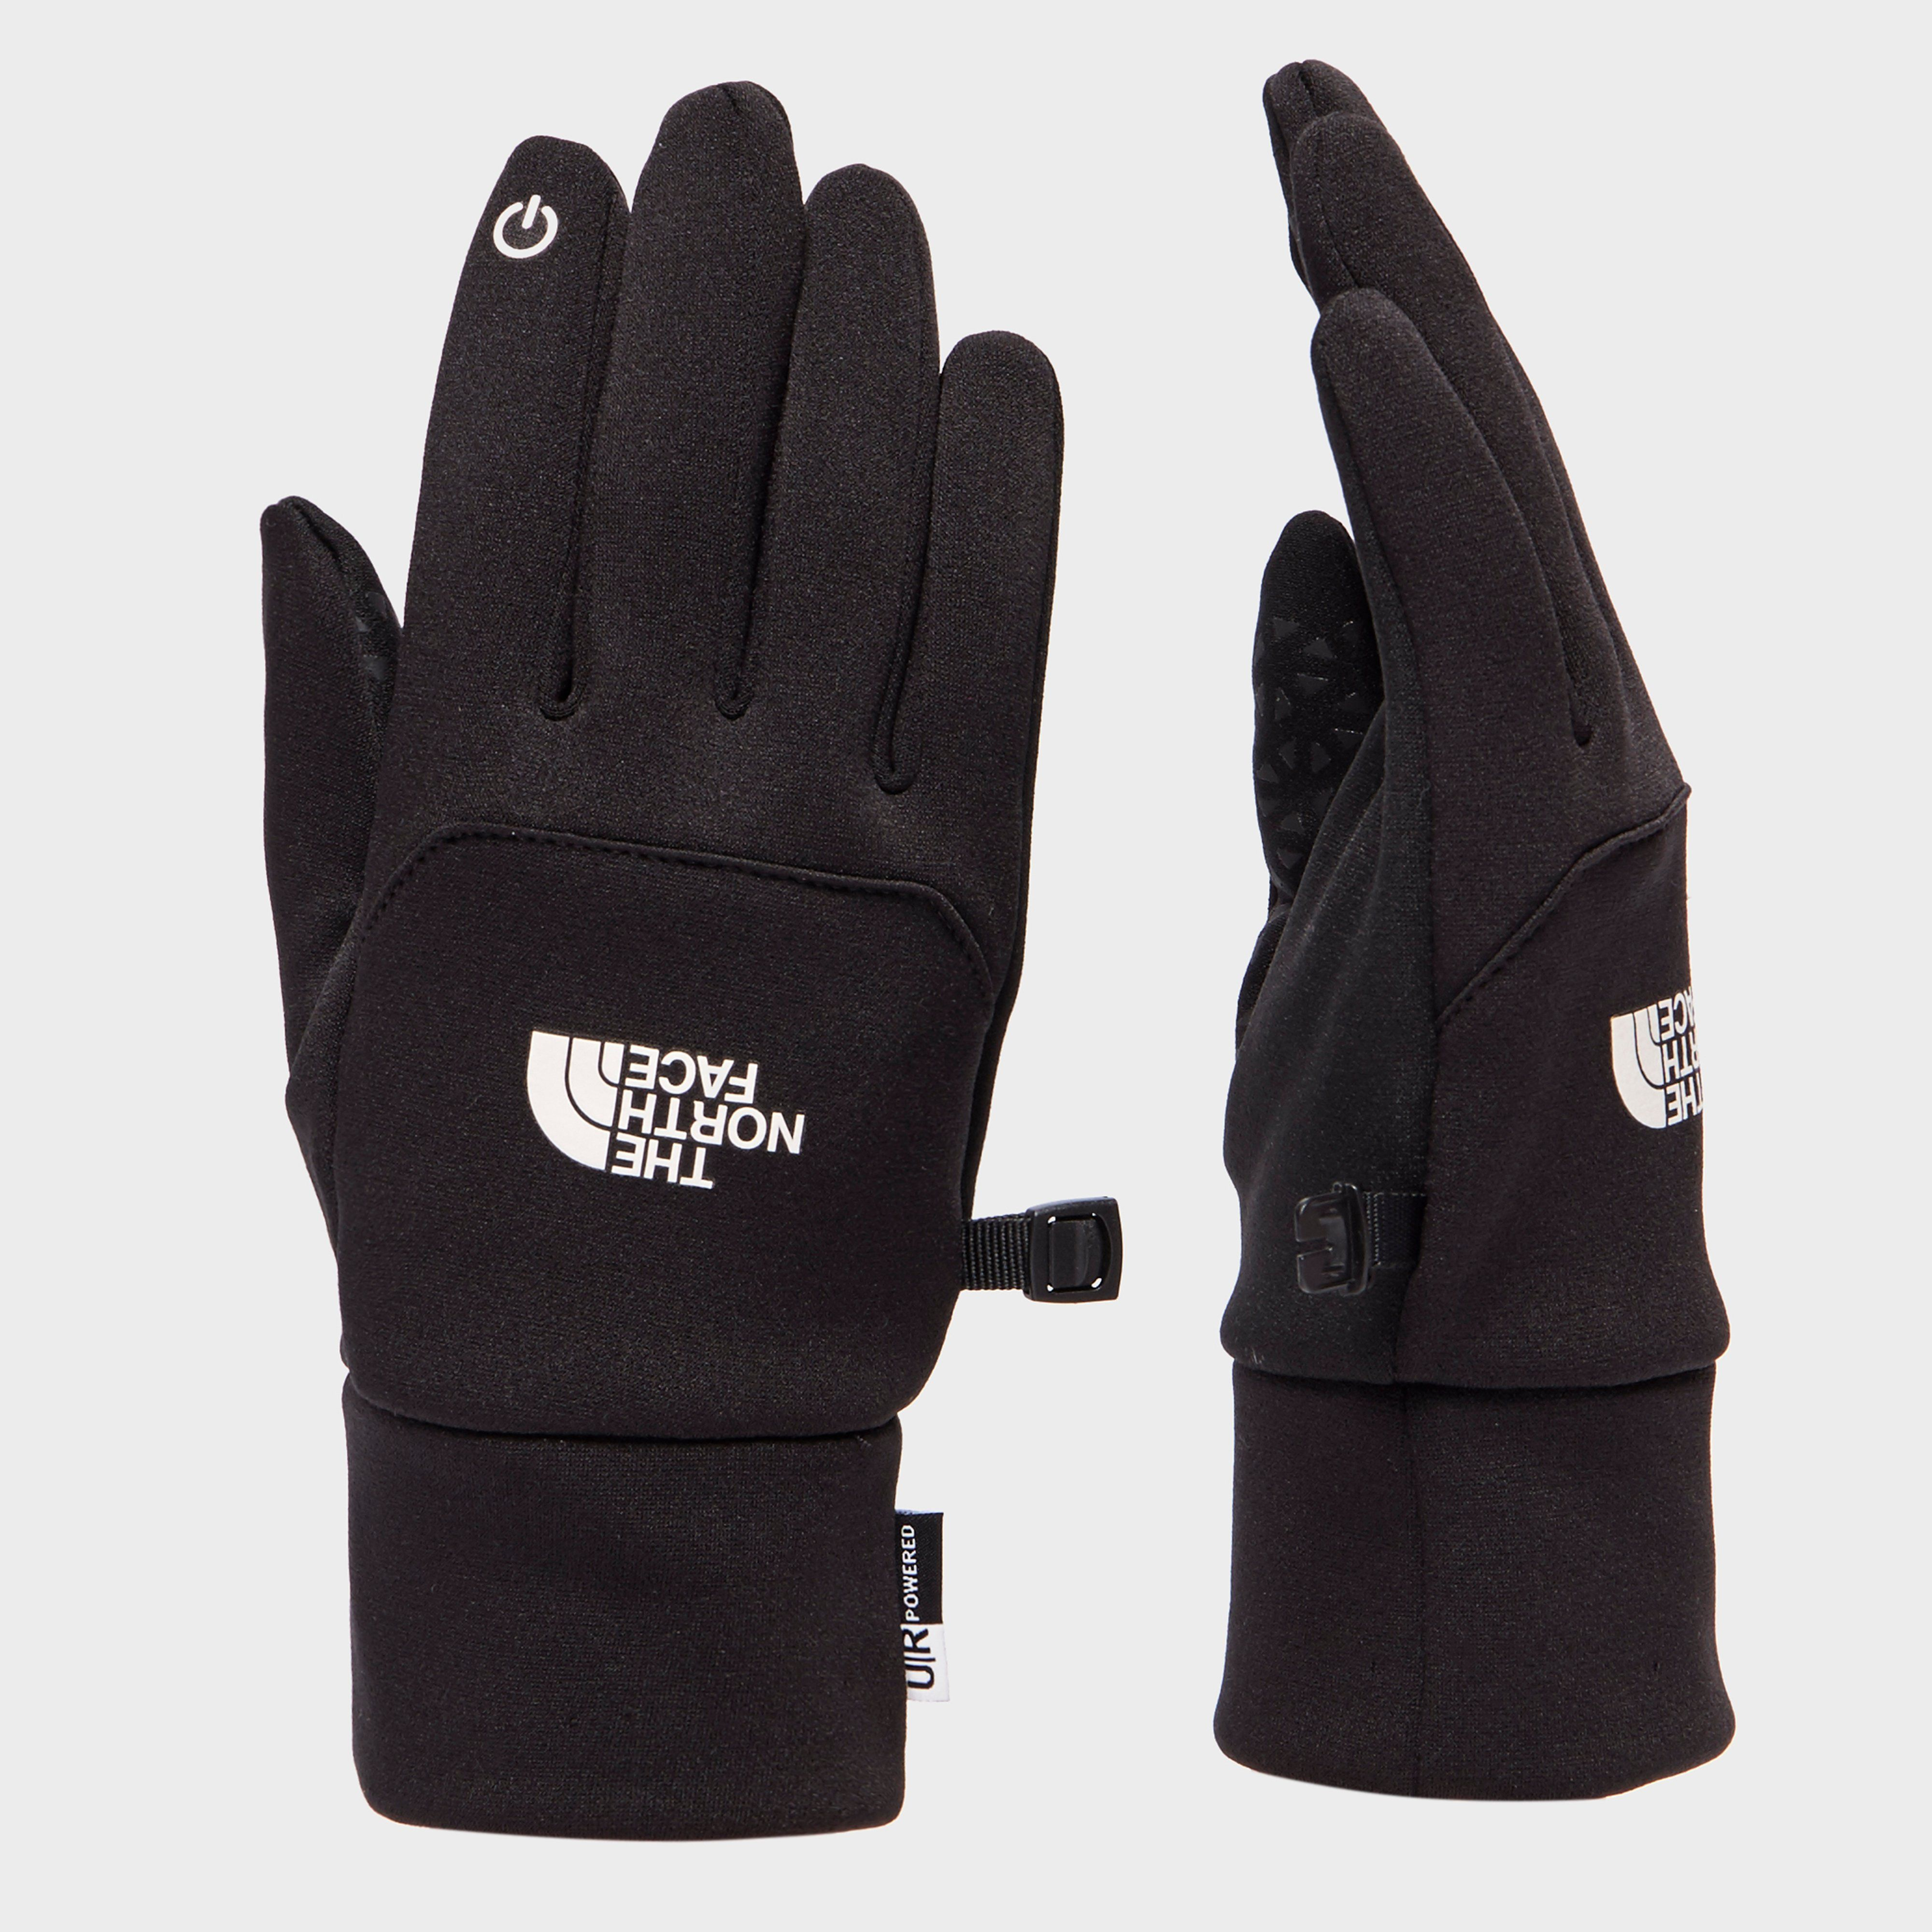 THE NORTH FACE Unisex Etip Gloves